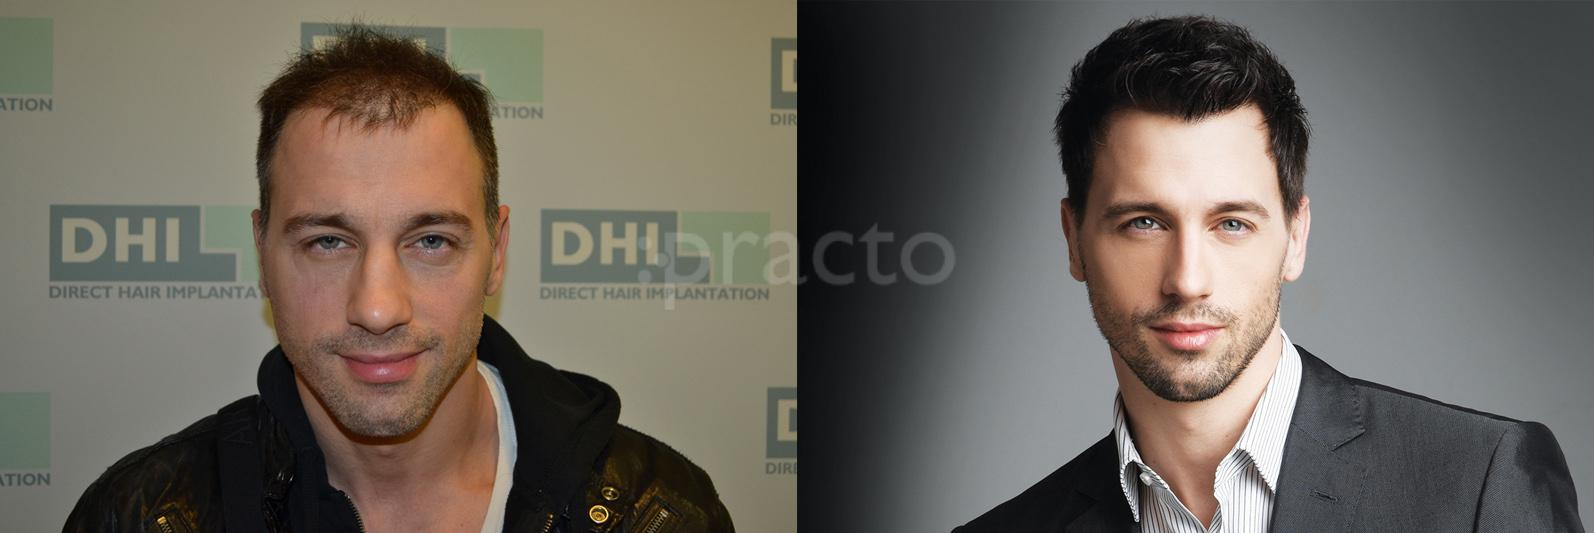 Dhi India, Hair Transplant Surgery and Cosmetic/Plastic Surgery ...